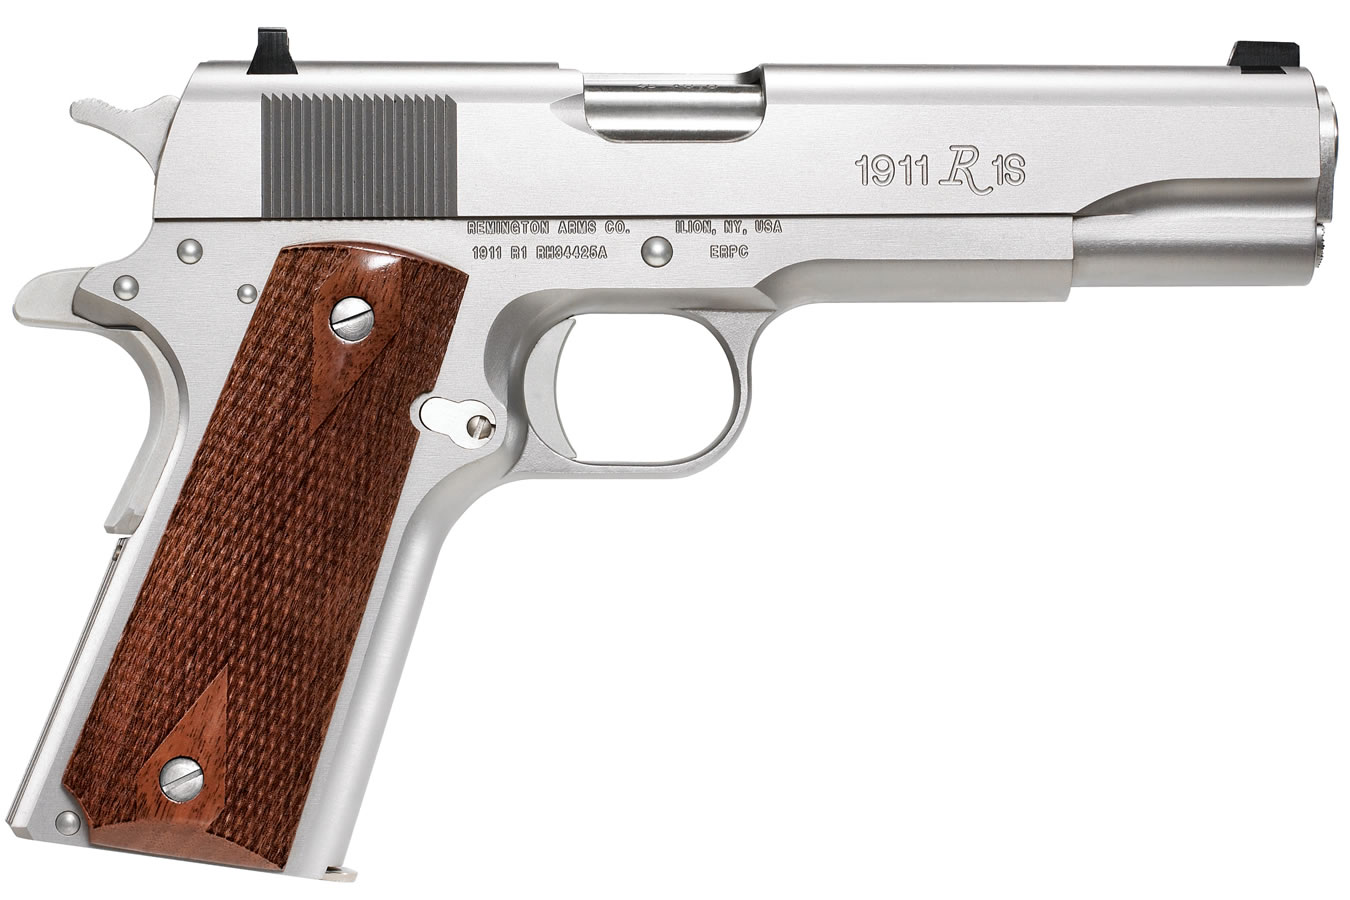 Remington 1911 R1 Stainless 45ACP Centerfire Pistol